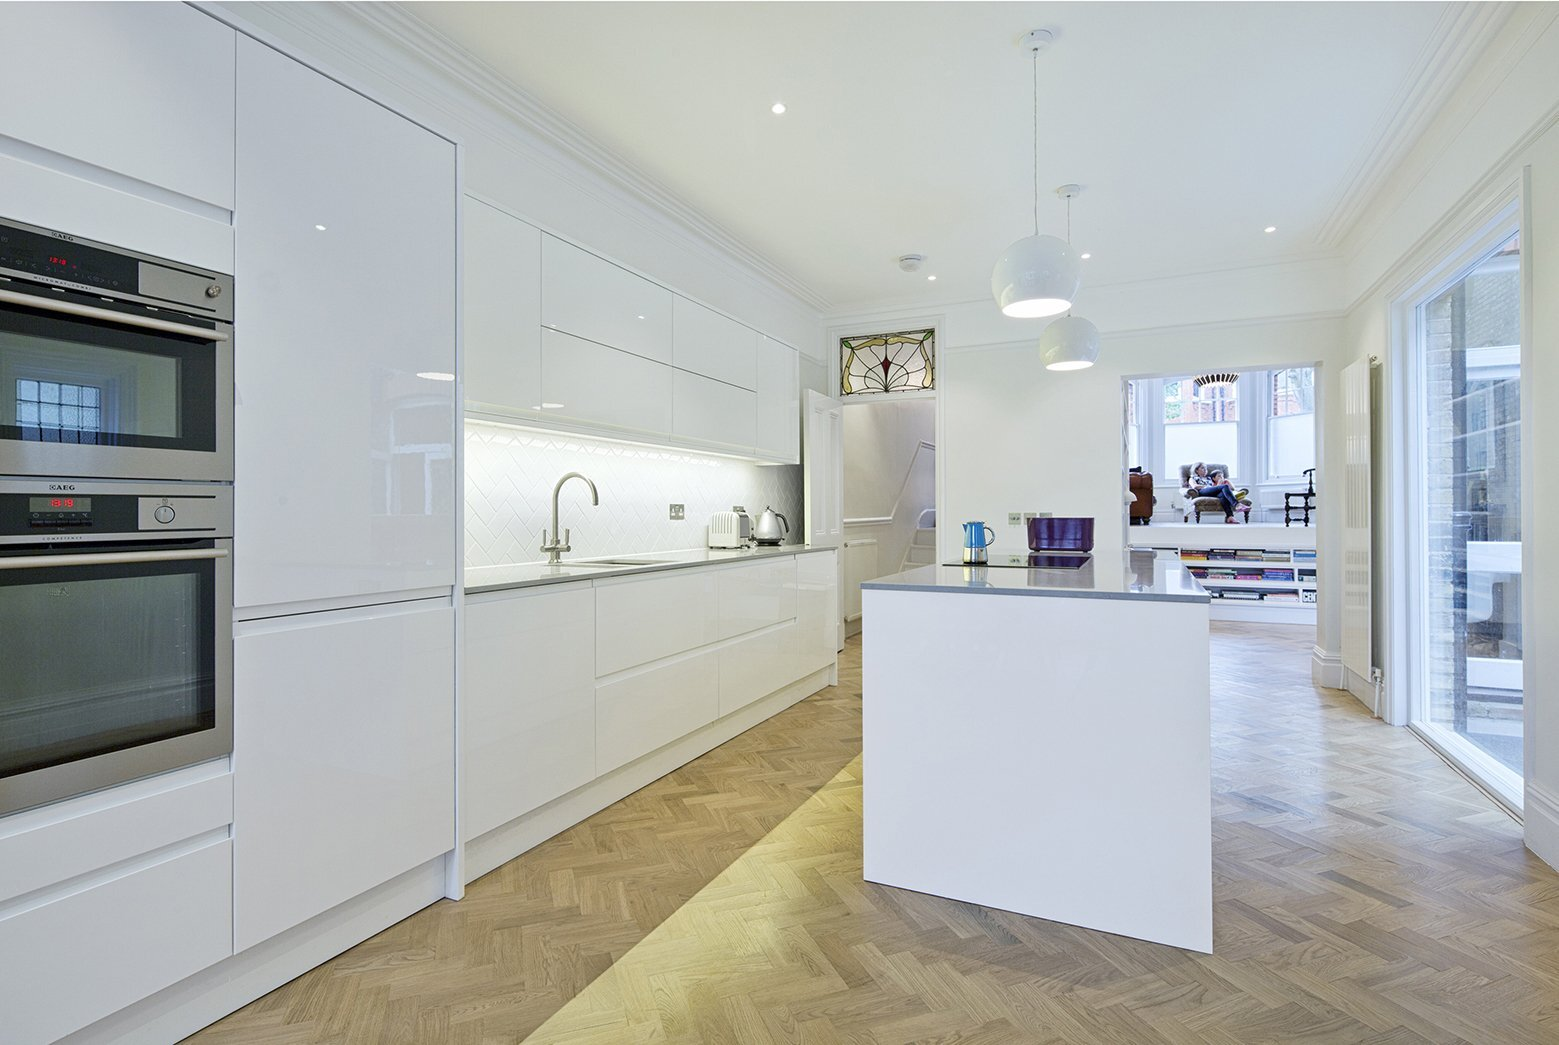 Small House - Zminkowska de Boise Architects - London - Kitchen - Humble Homes